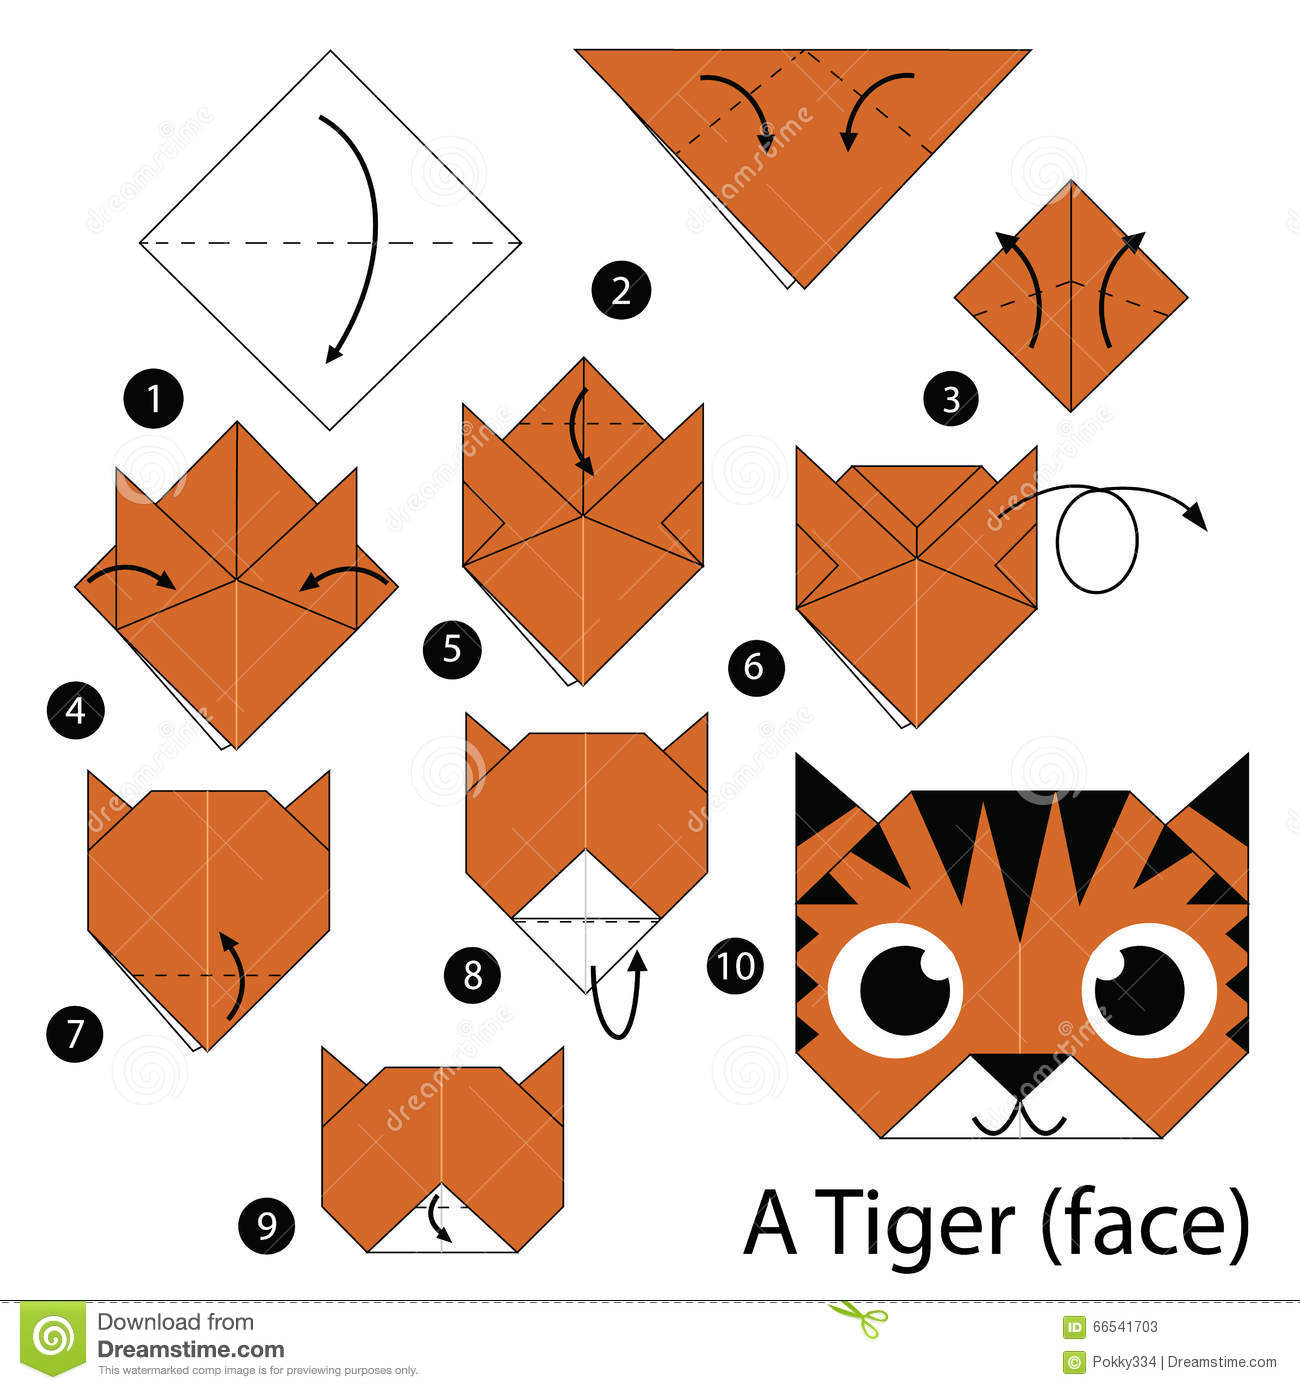 instructions tape par tape comment faire origami un tigre visage illustration stock. Black Bedroom Furniture Sets. Home Design Ideas